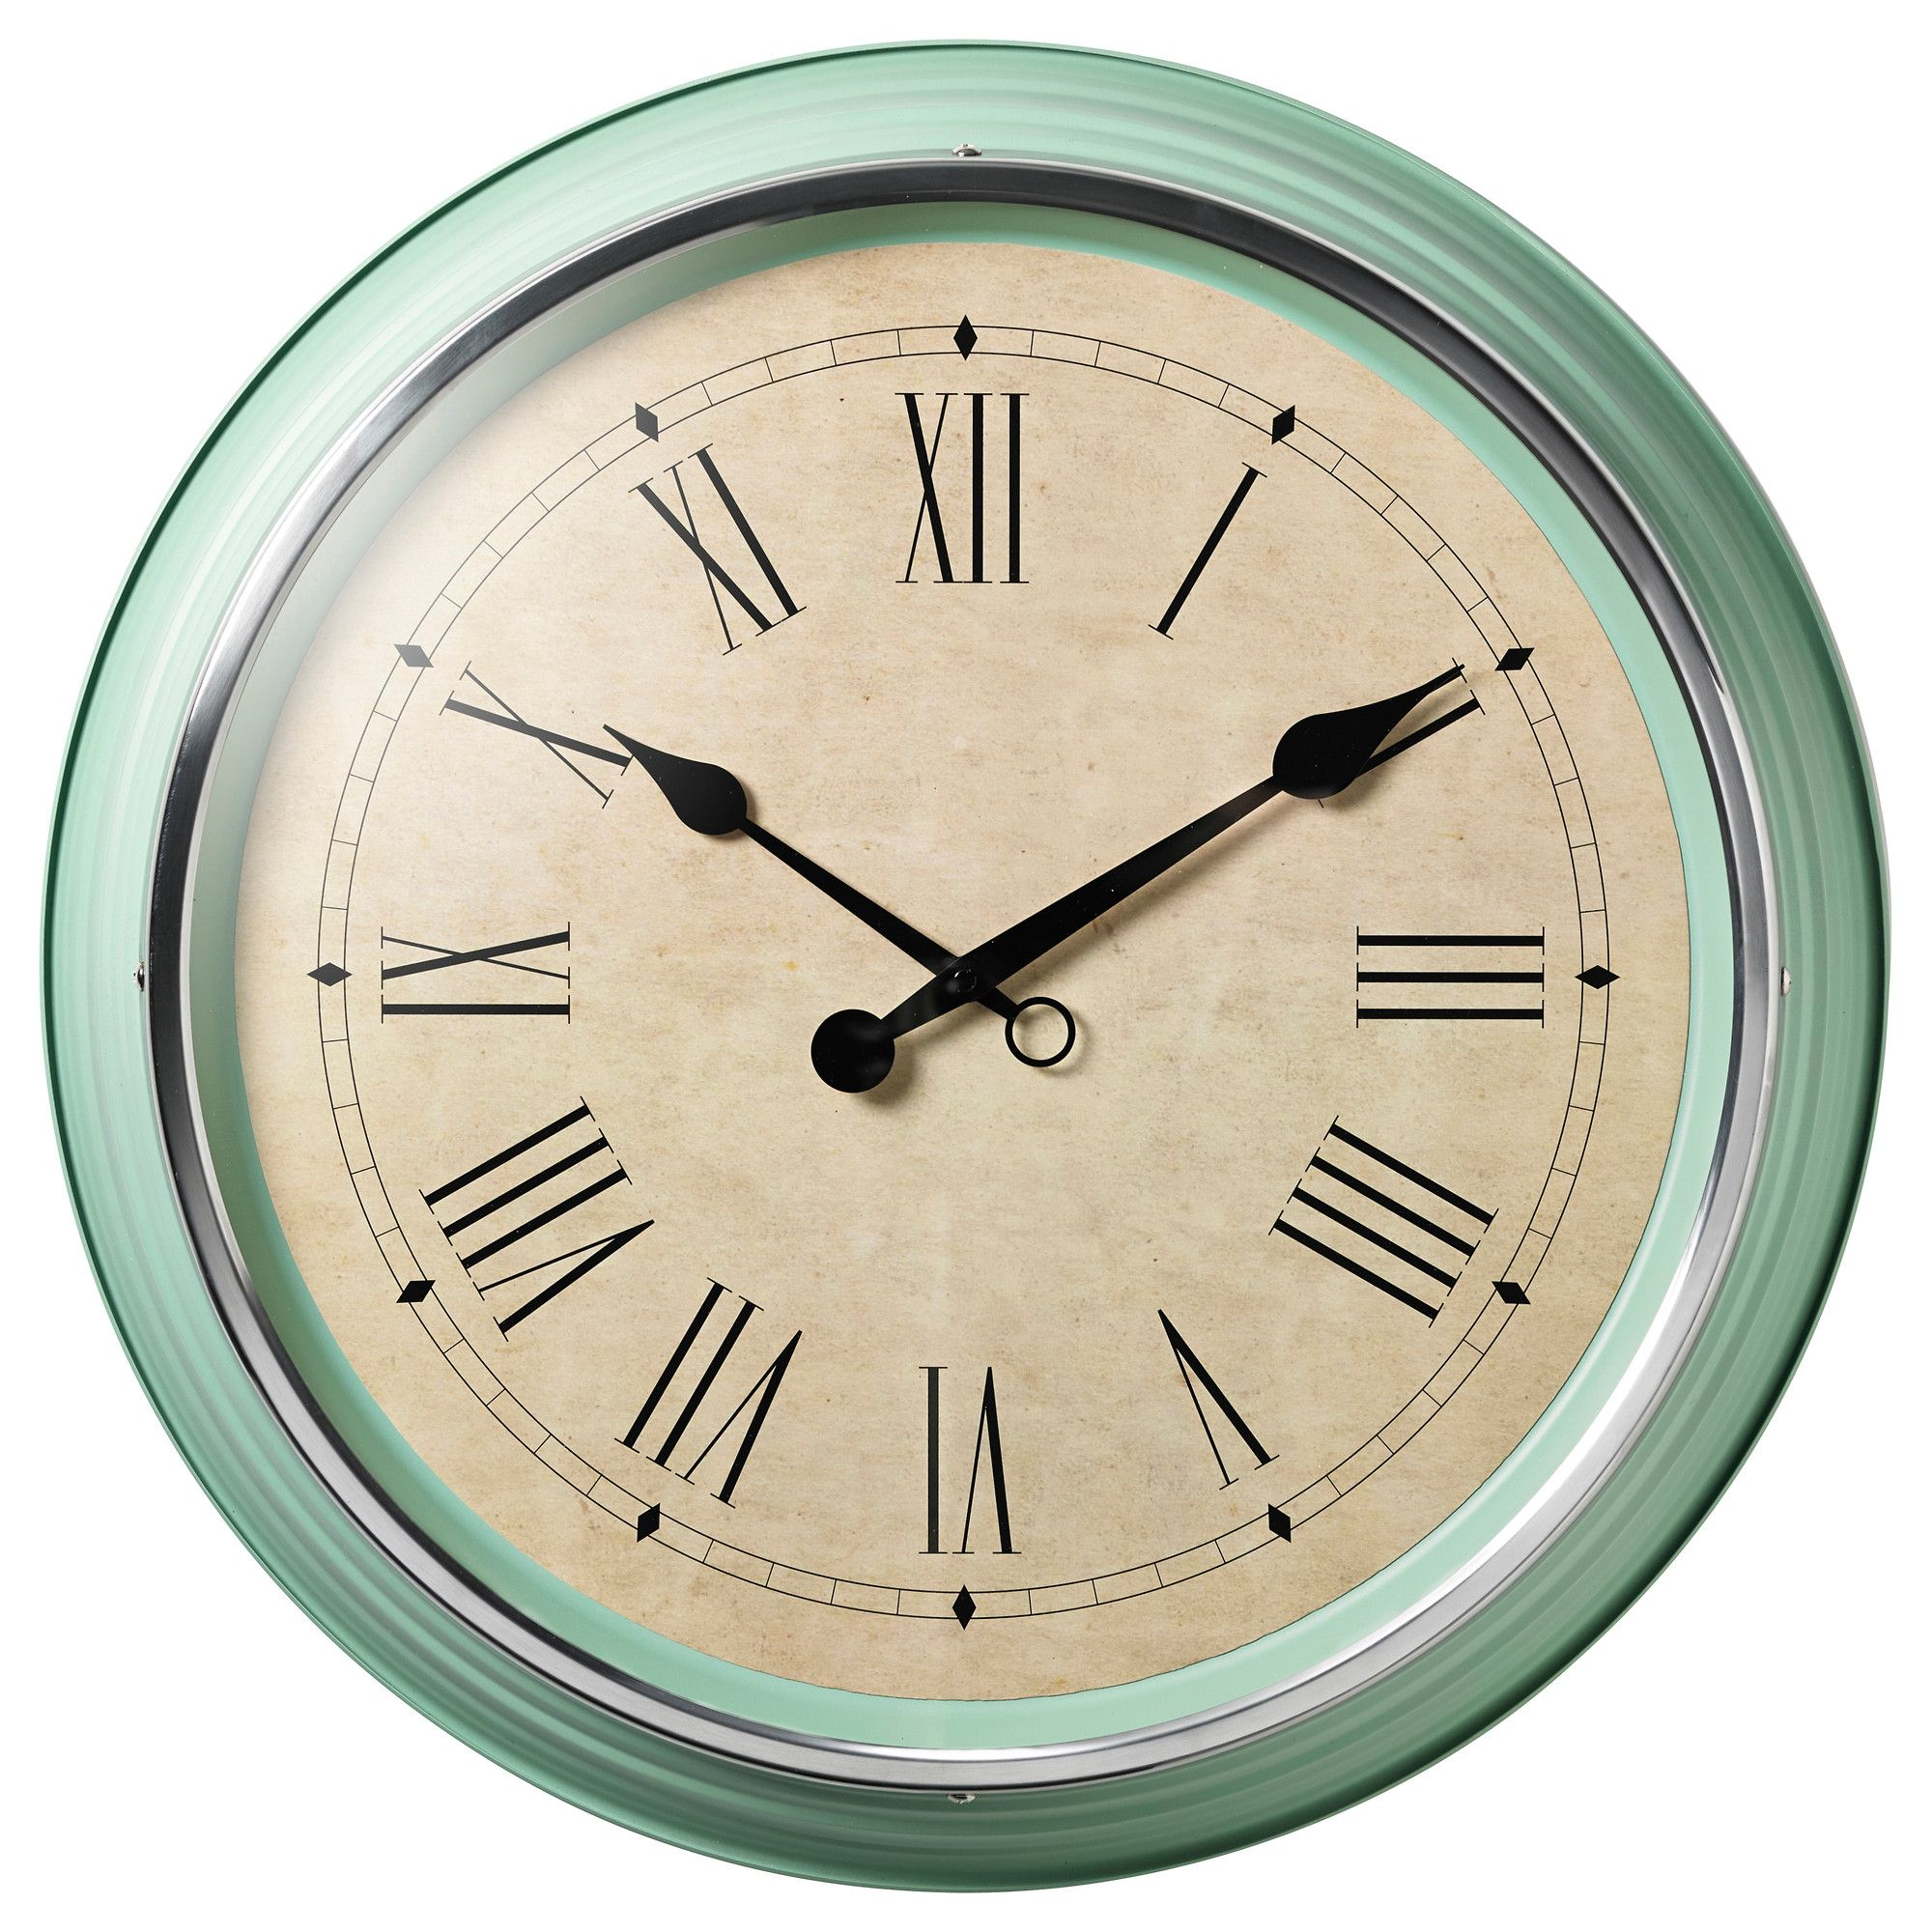 Statement Wall Clocks 49 99 Skovel Wall Clock Ikea 2 39 Diameter Would Make